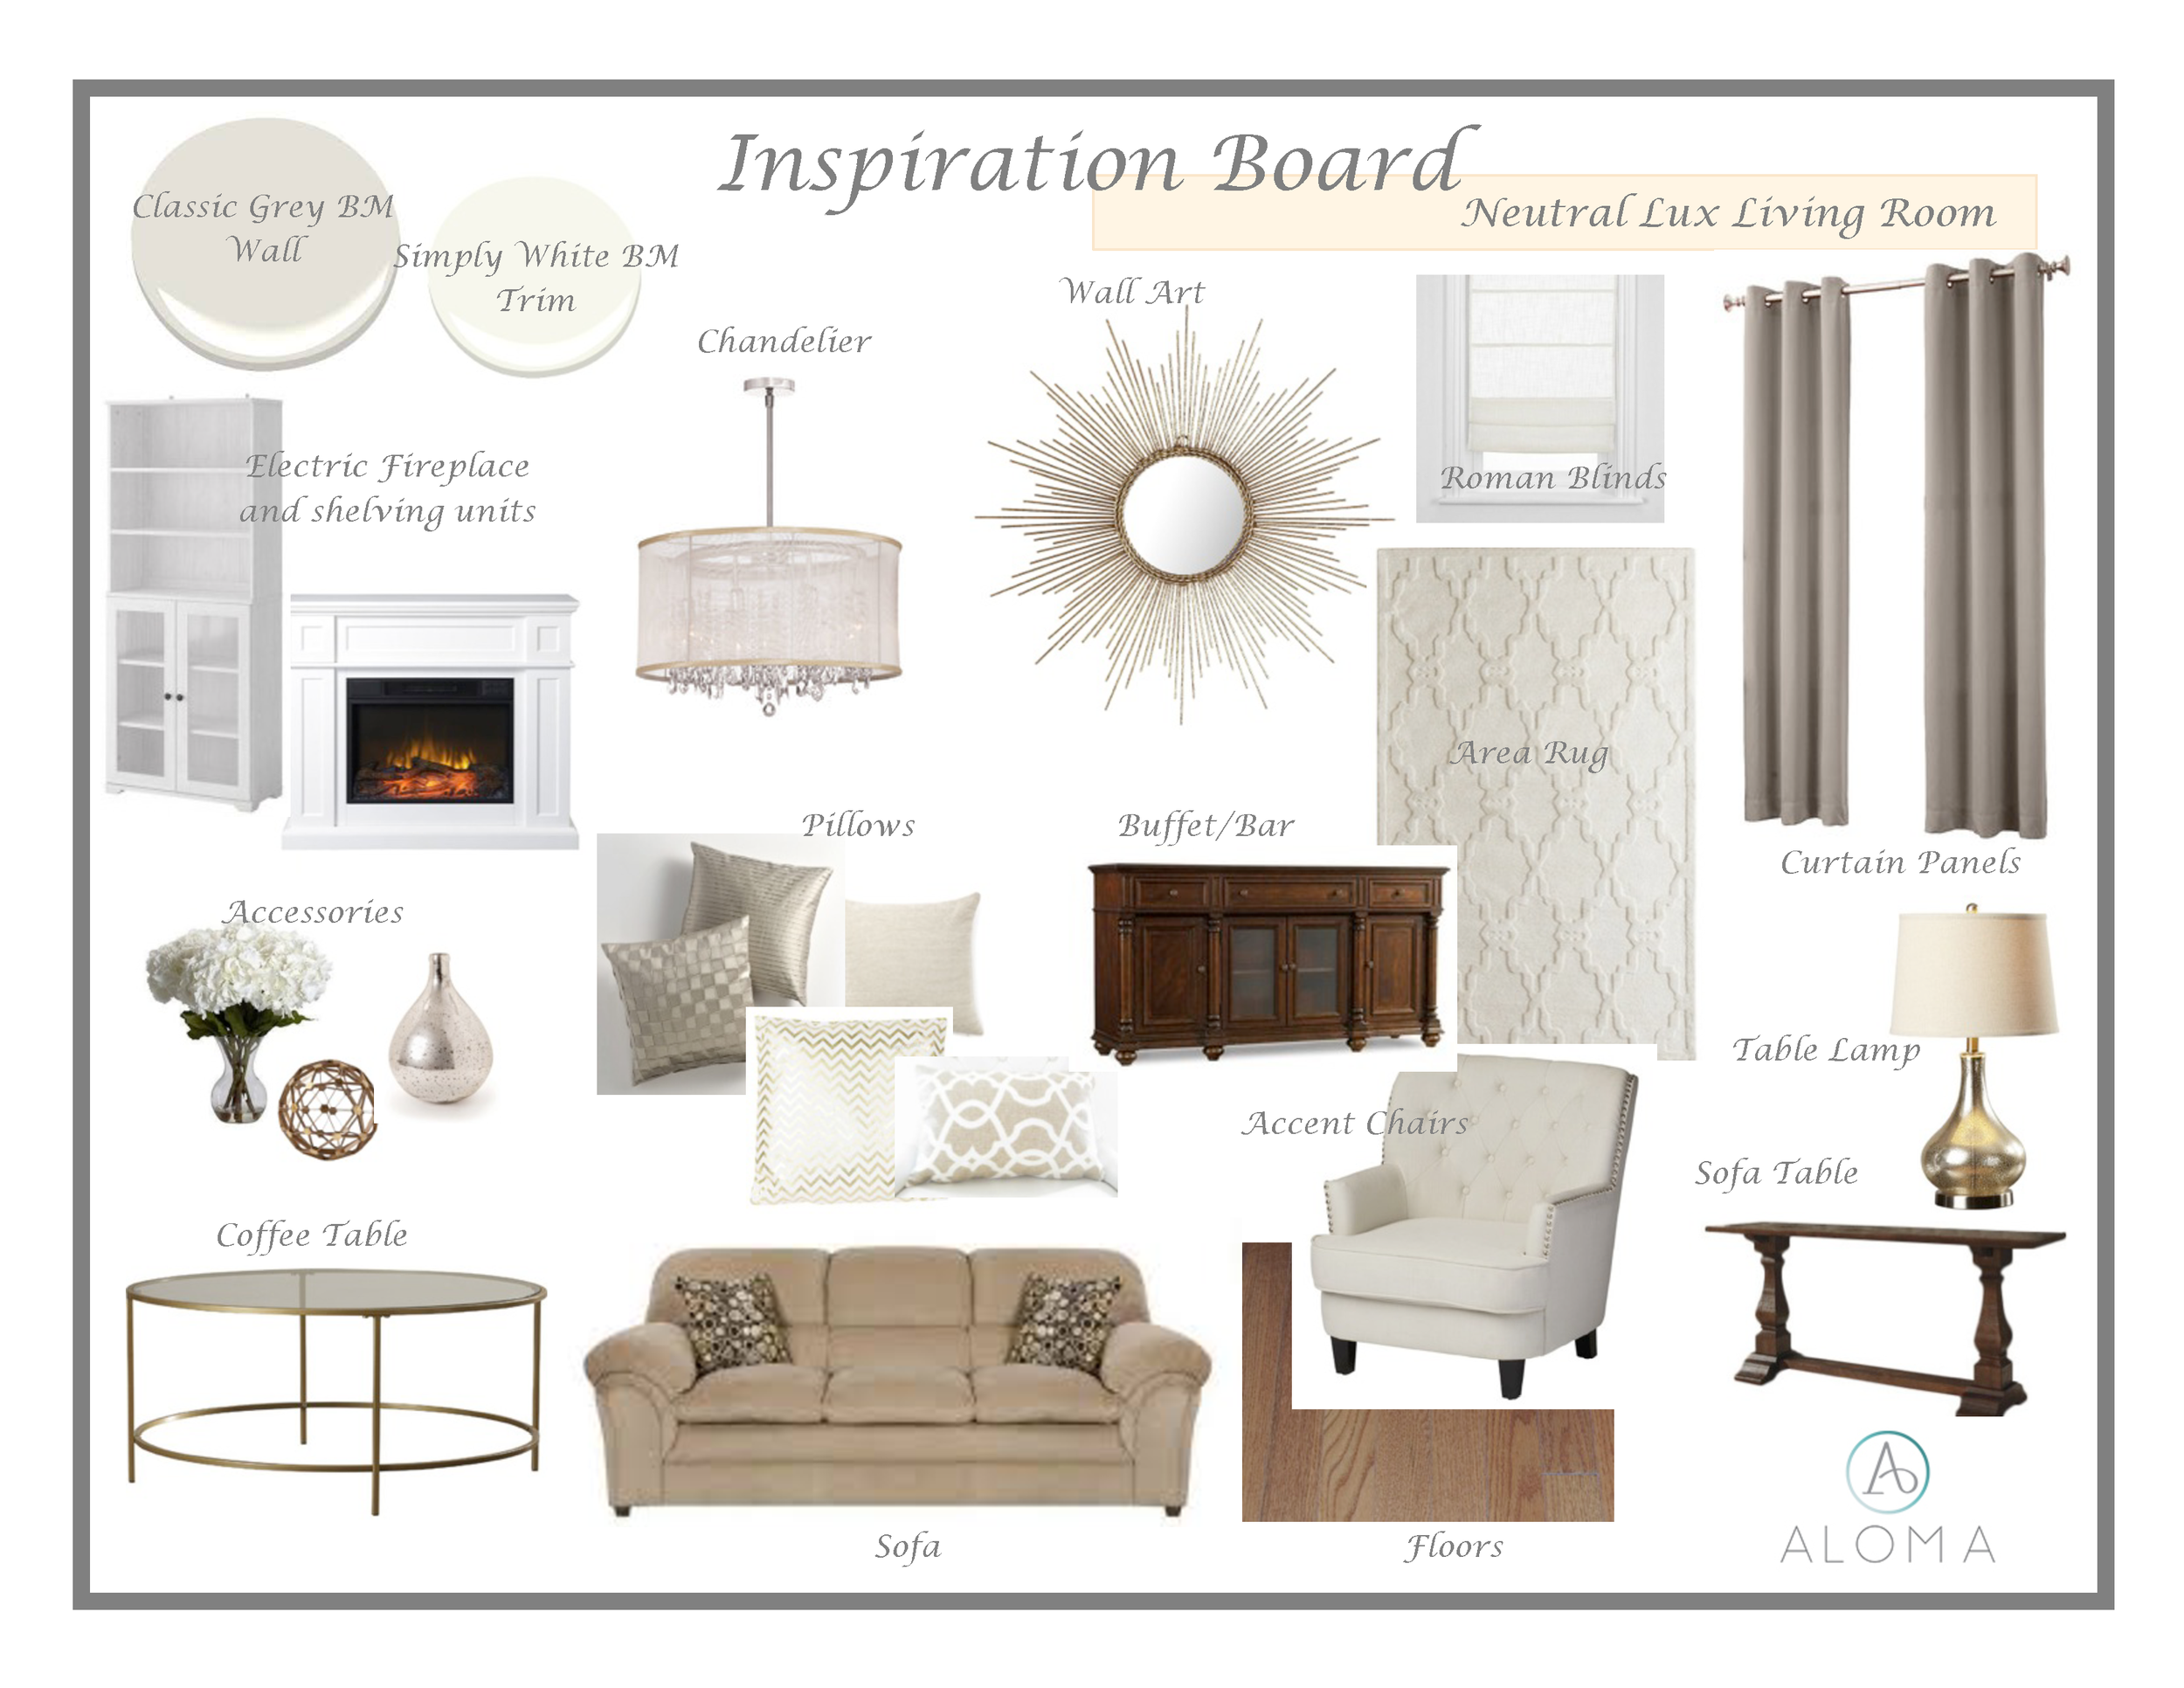 Neutral Lux Living Room Inspiration Board by Aloma Home Staging & Design